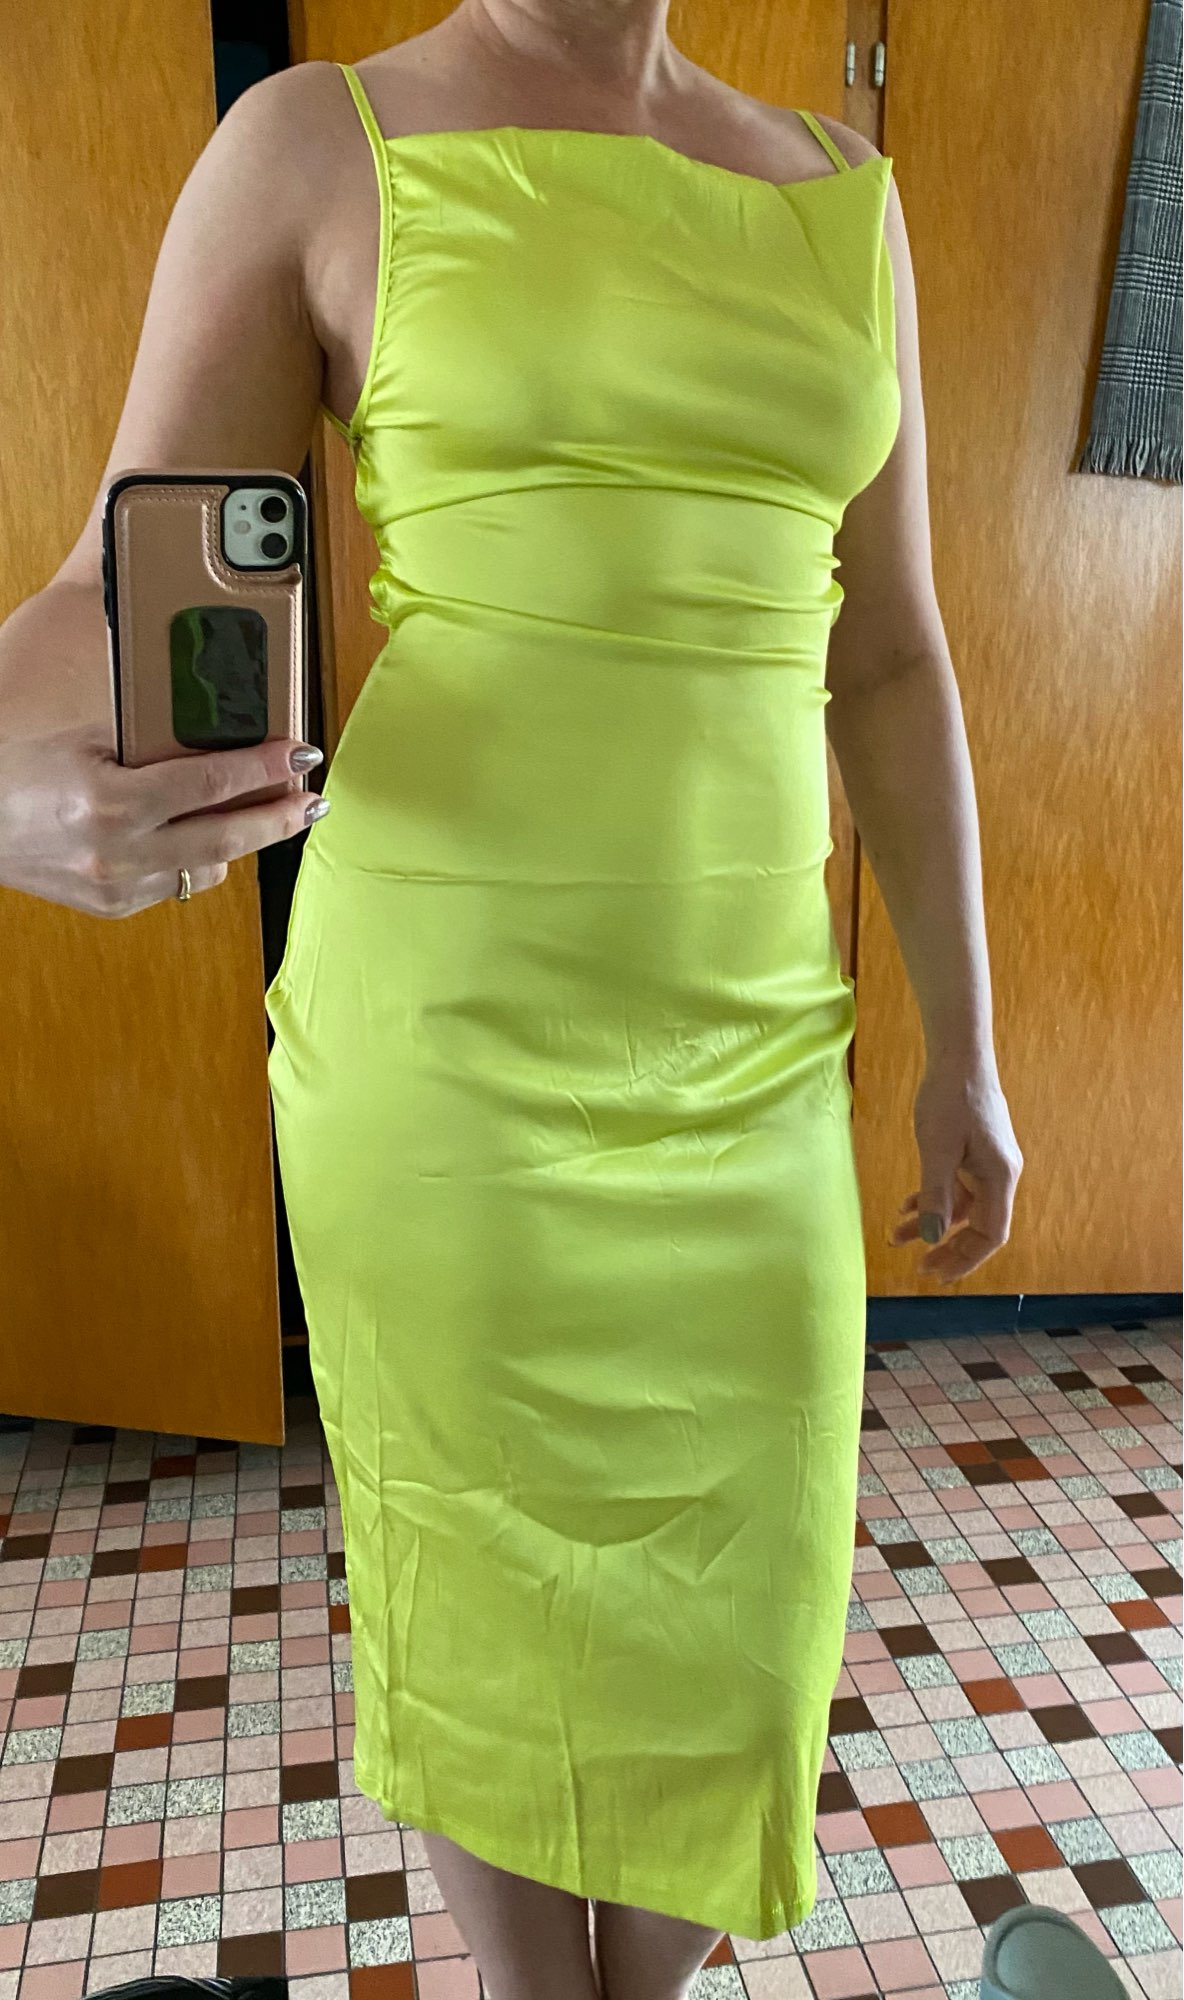 Dulzura neon satin lace up 2021 summer women bodycon long midi dress sleeveless backless elegant party outfits sexy club clothes|Dresses|   - AliExpress